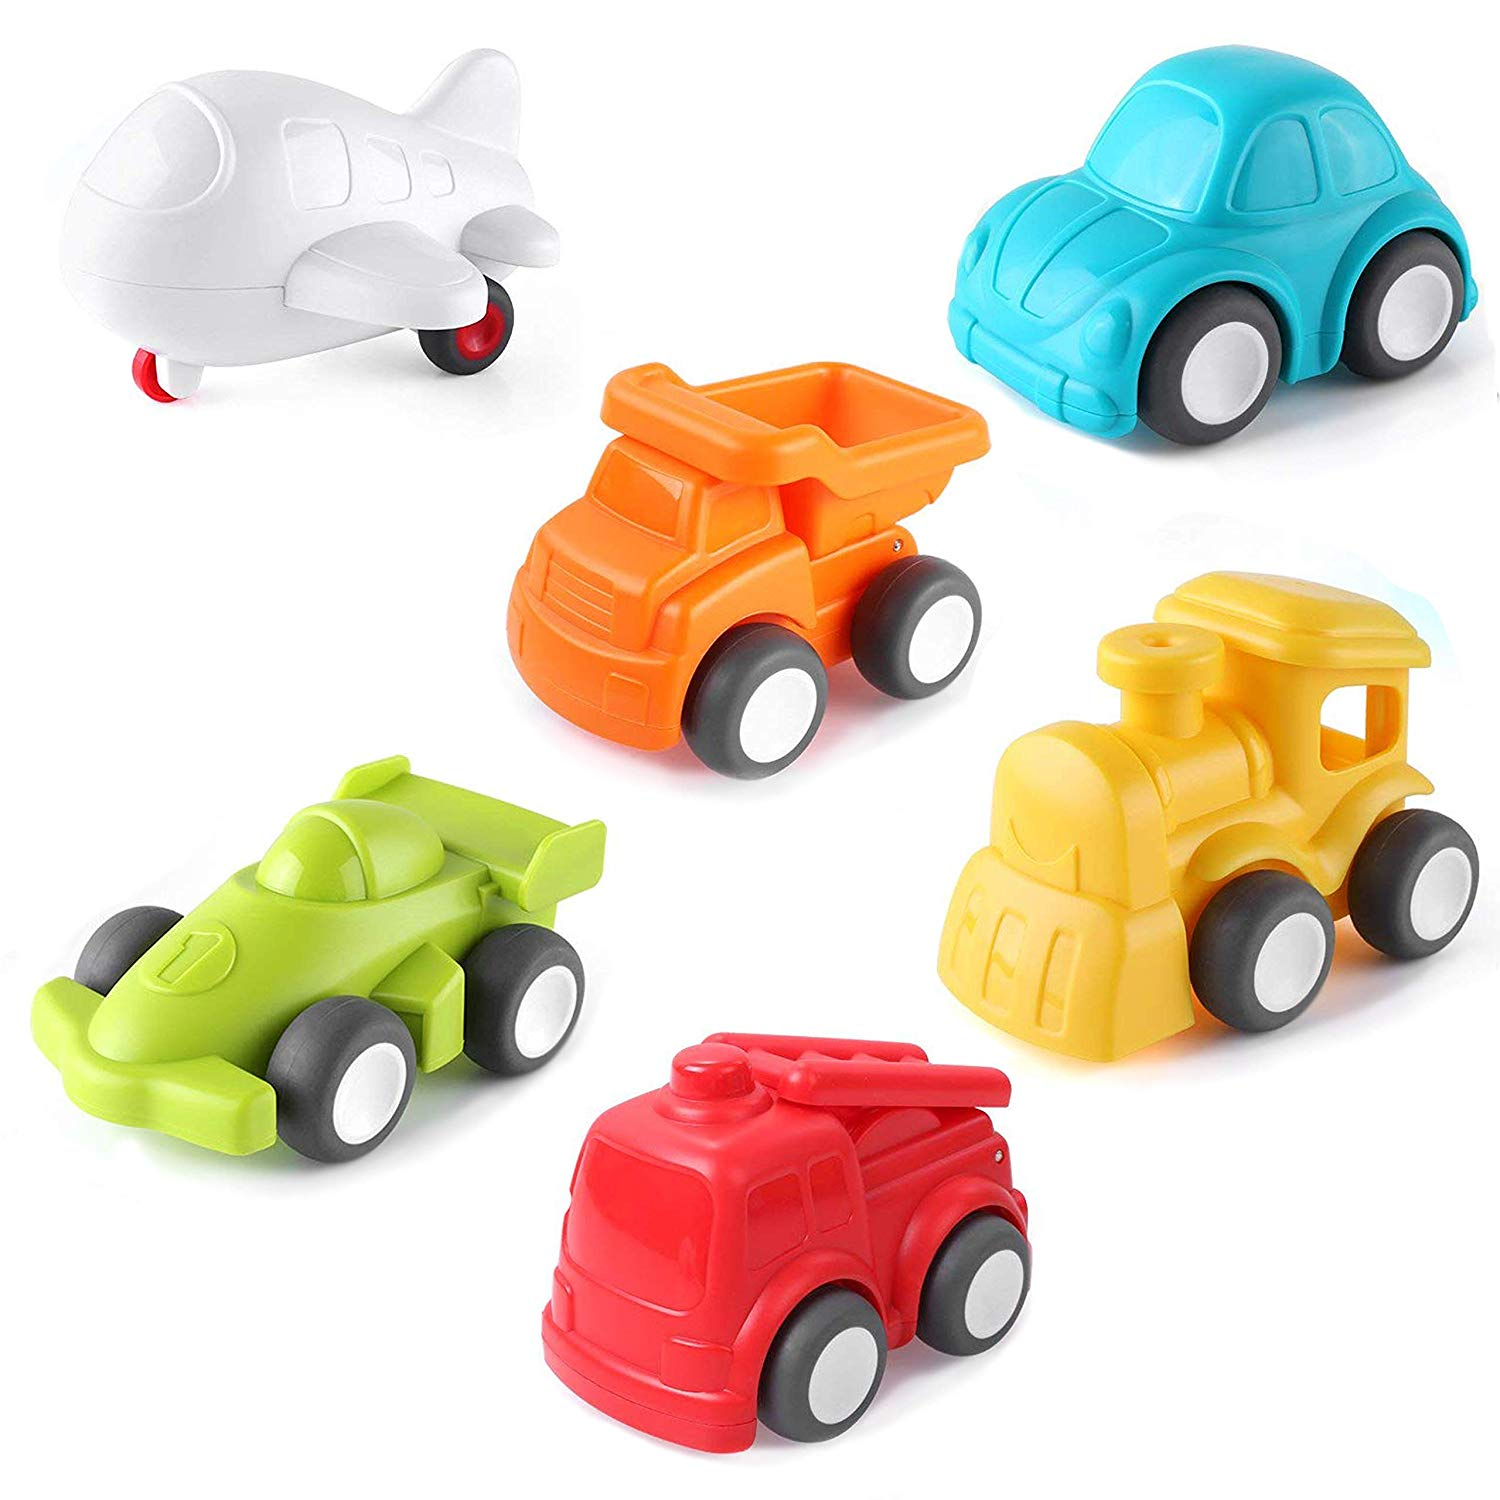 6 Pack City Vehicles- Baby Toy, with Dump Truck, Train, Fire Truck, Plane, Car and Racing Car